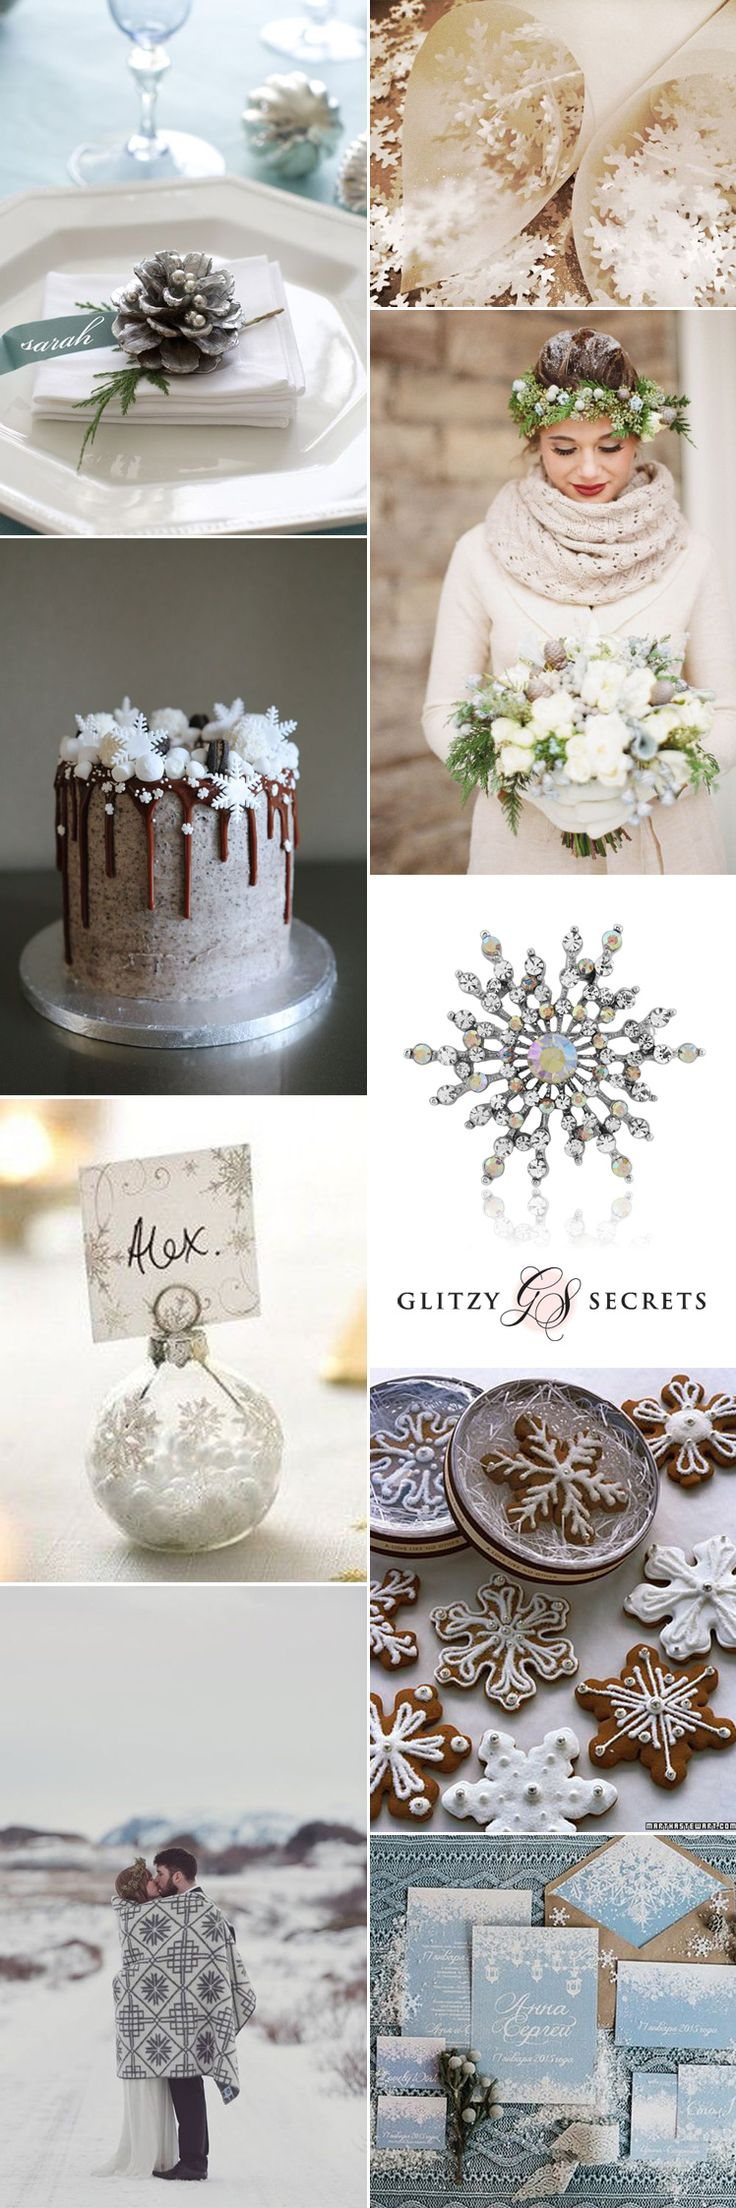 Beautiful snowflake wedding ideas on GS Inspiration - Glitzy Secrets